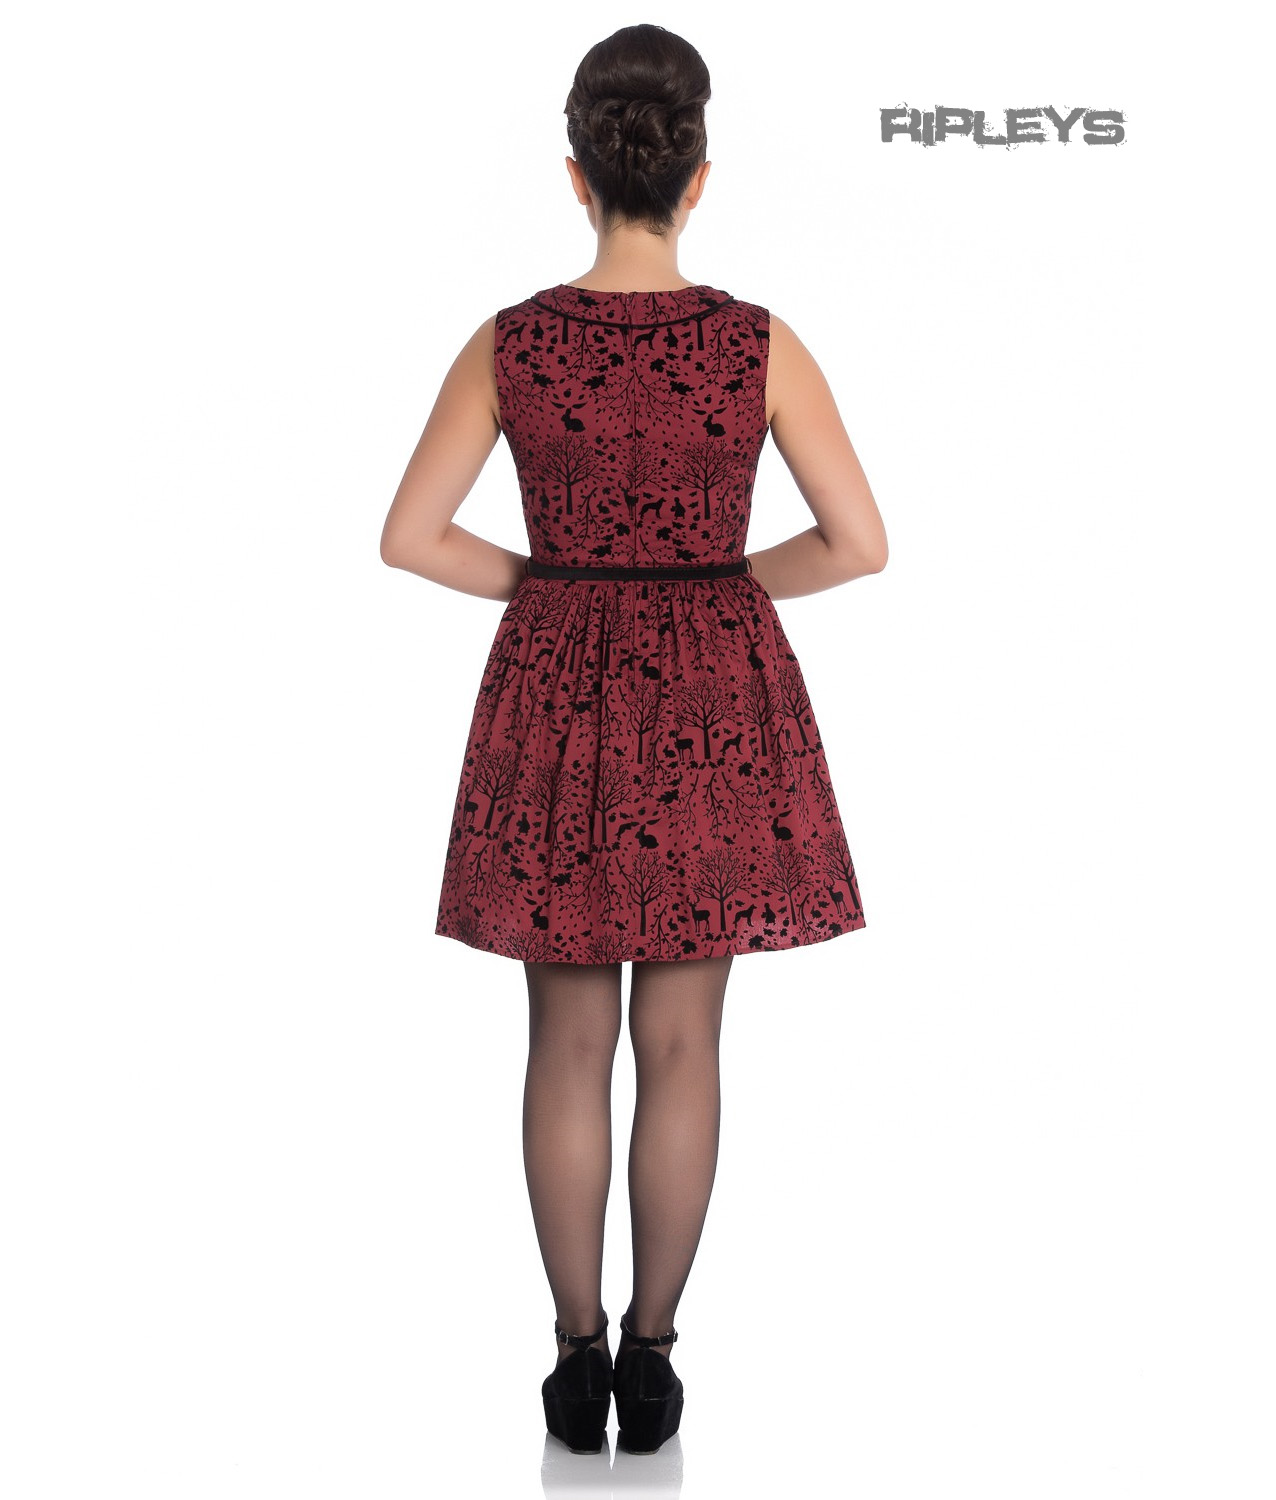 Hell-Bunny-50s-Mini-Skater-Dress-Woodland-Trees-SHERWOOD-Black-Red-All-Sizes thumbnail 16